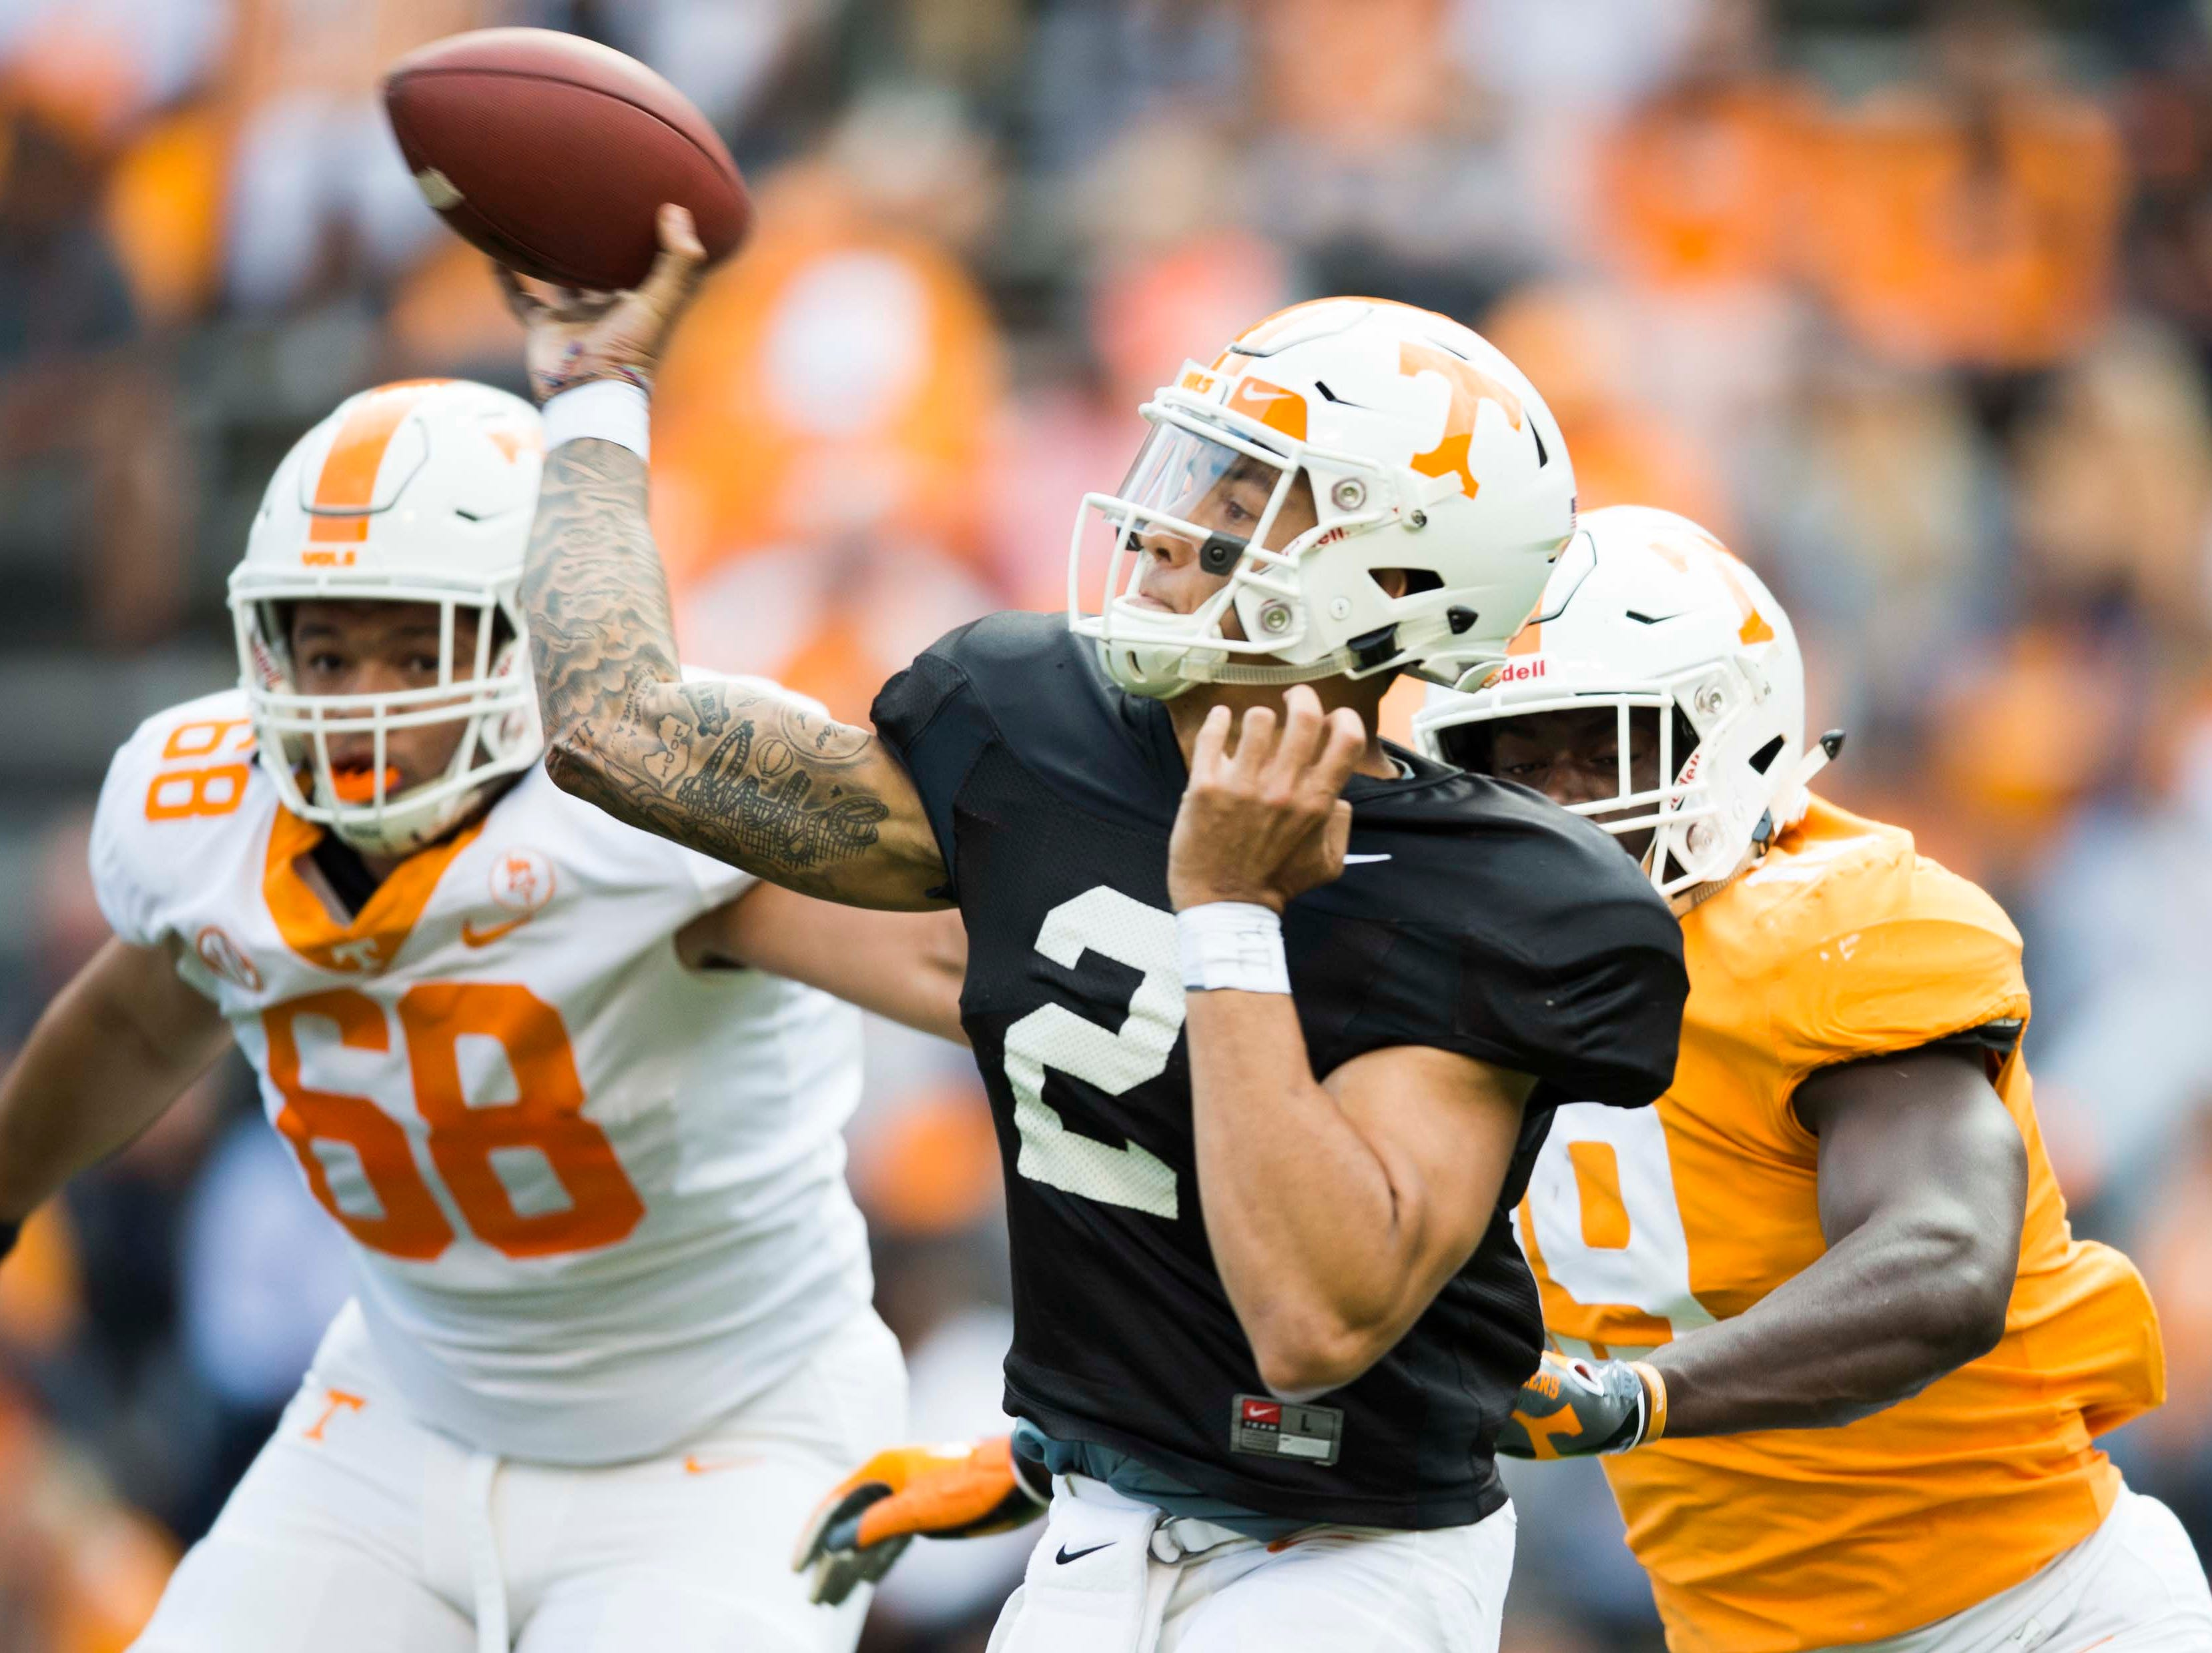 Tennessee quarterback Jarrett Guarantano (2) throws the ball during the Vols spring game in Neyland Stadium in Knoxville Saturday, April 13, 2019.